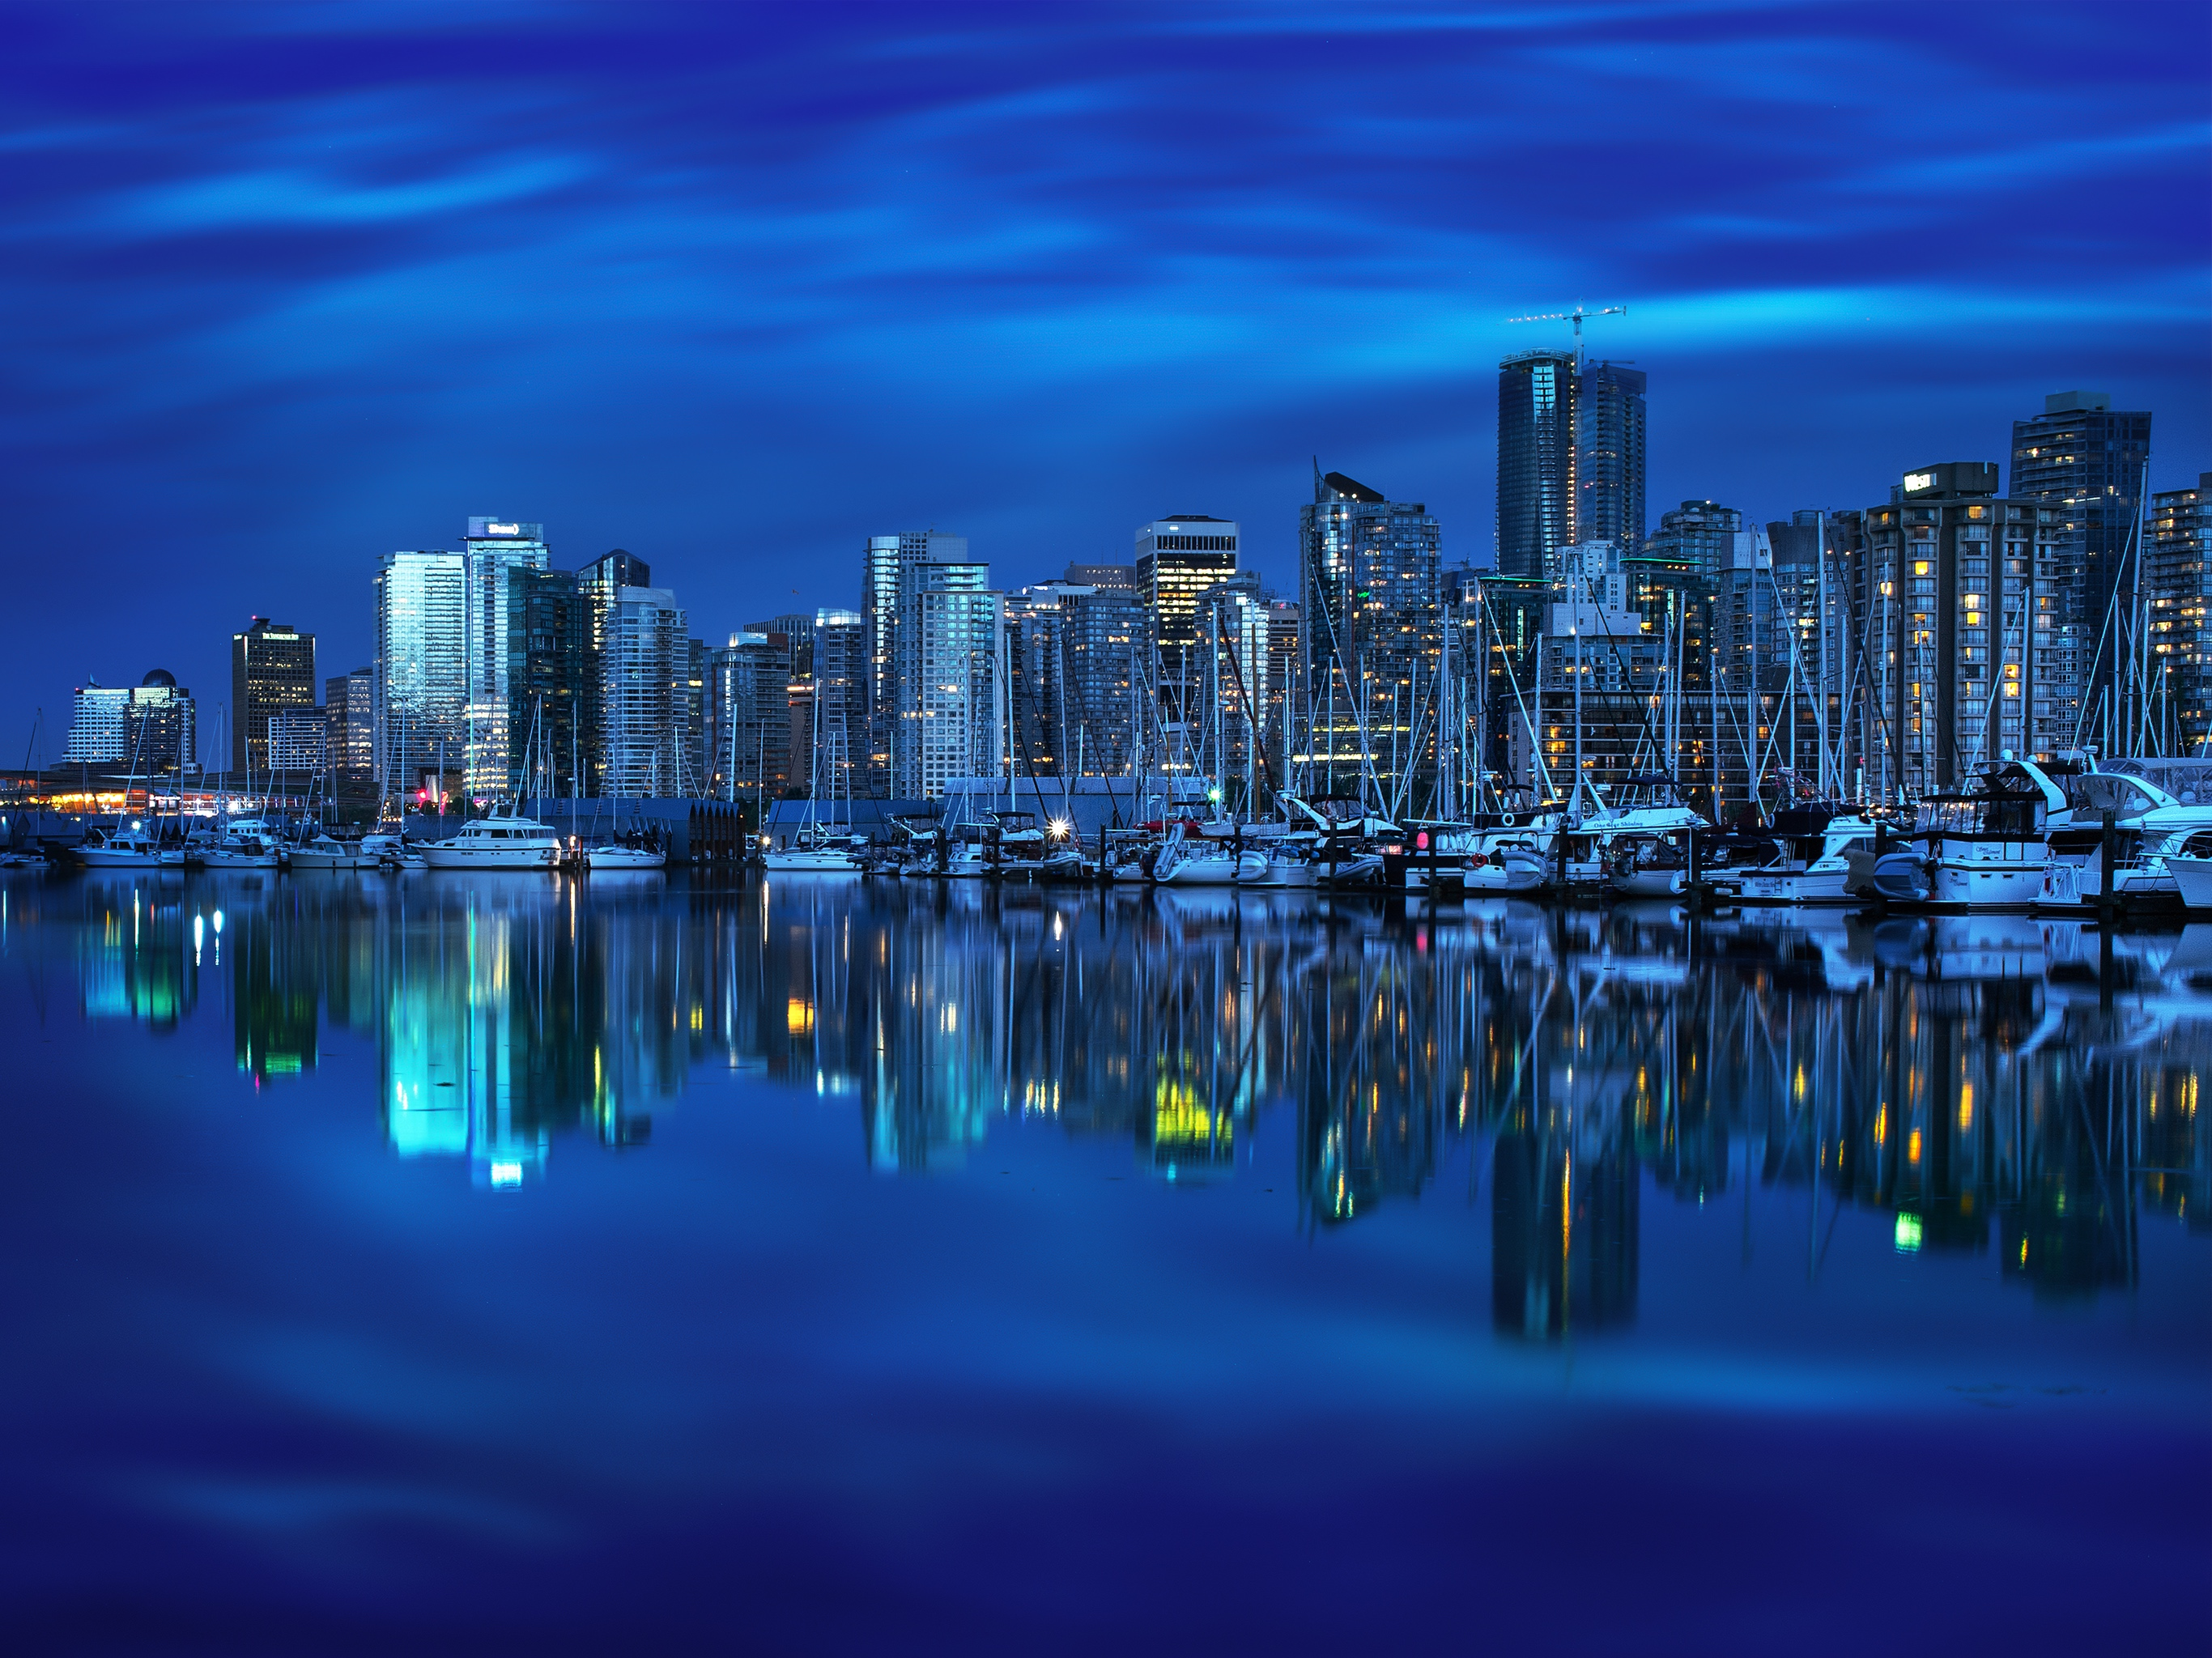 Vancouvers Mirror by Mohsen Kamalzadeh iPad Pro Wallpaper